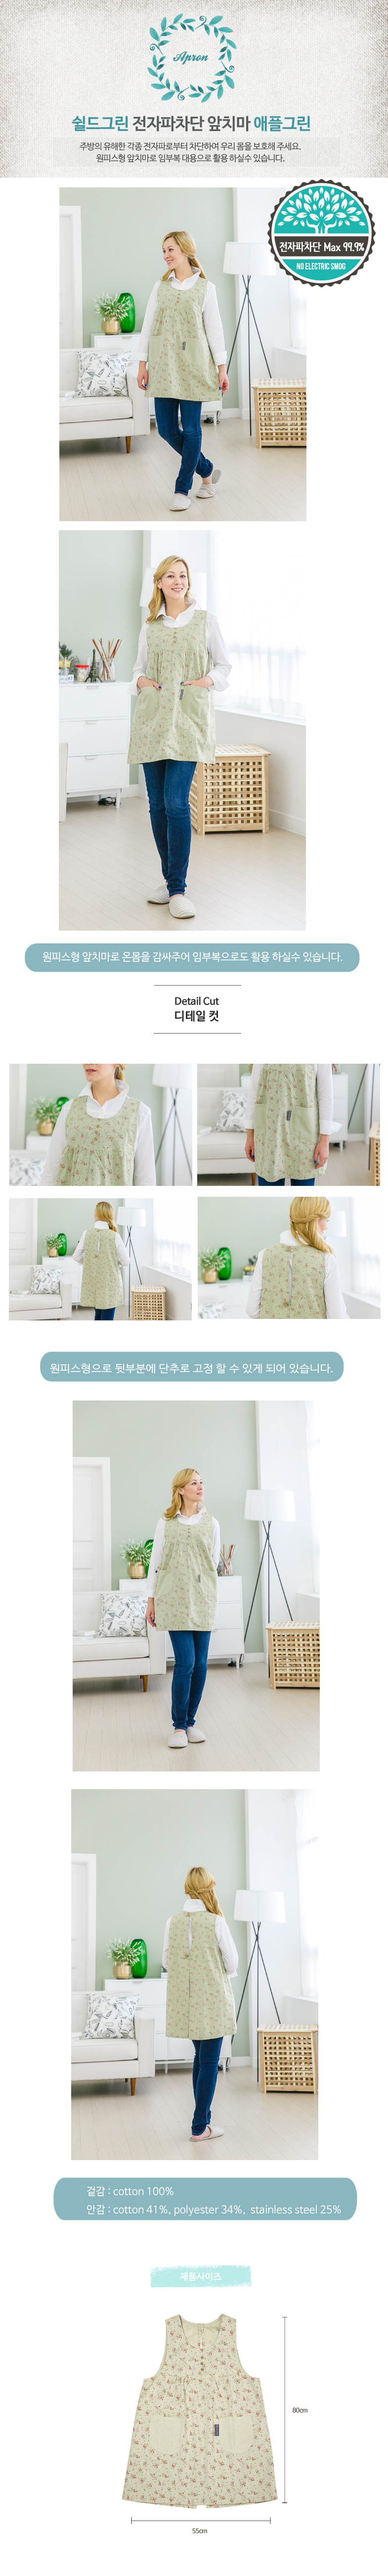 [ ShieldGreen ] Shieldgreen Anti Radiation/ EMF Shielding Apron Applegreen